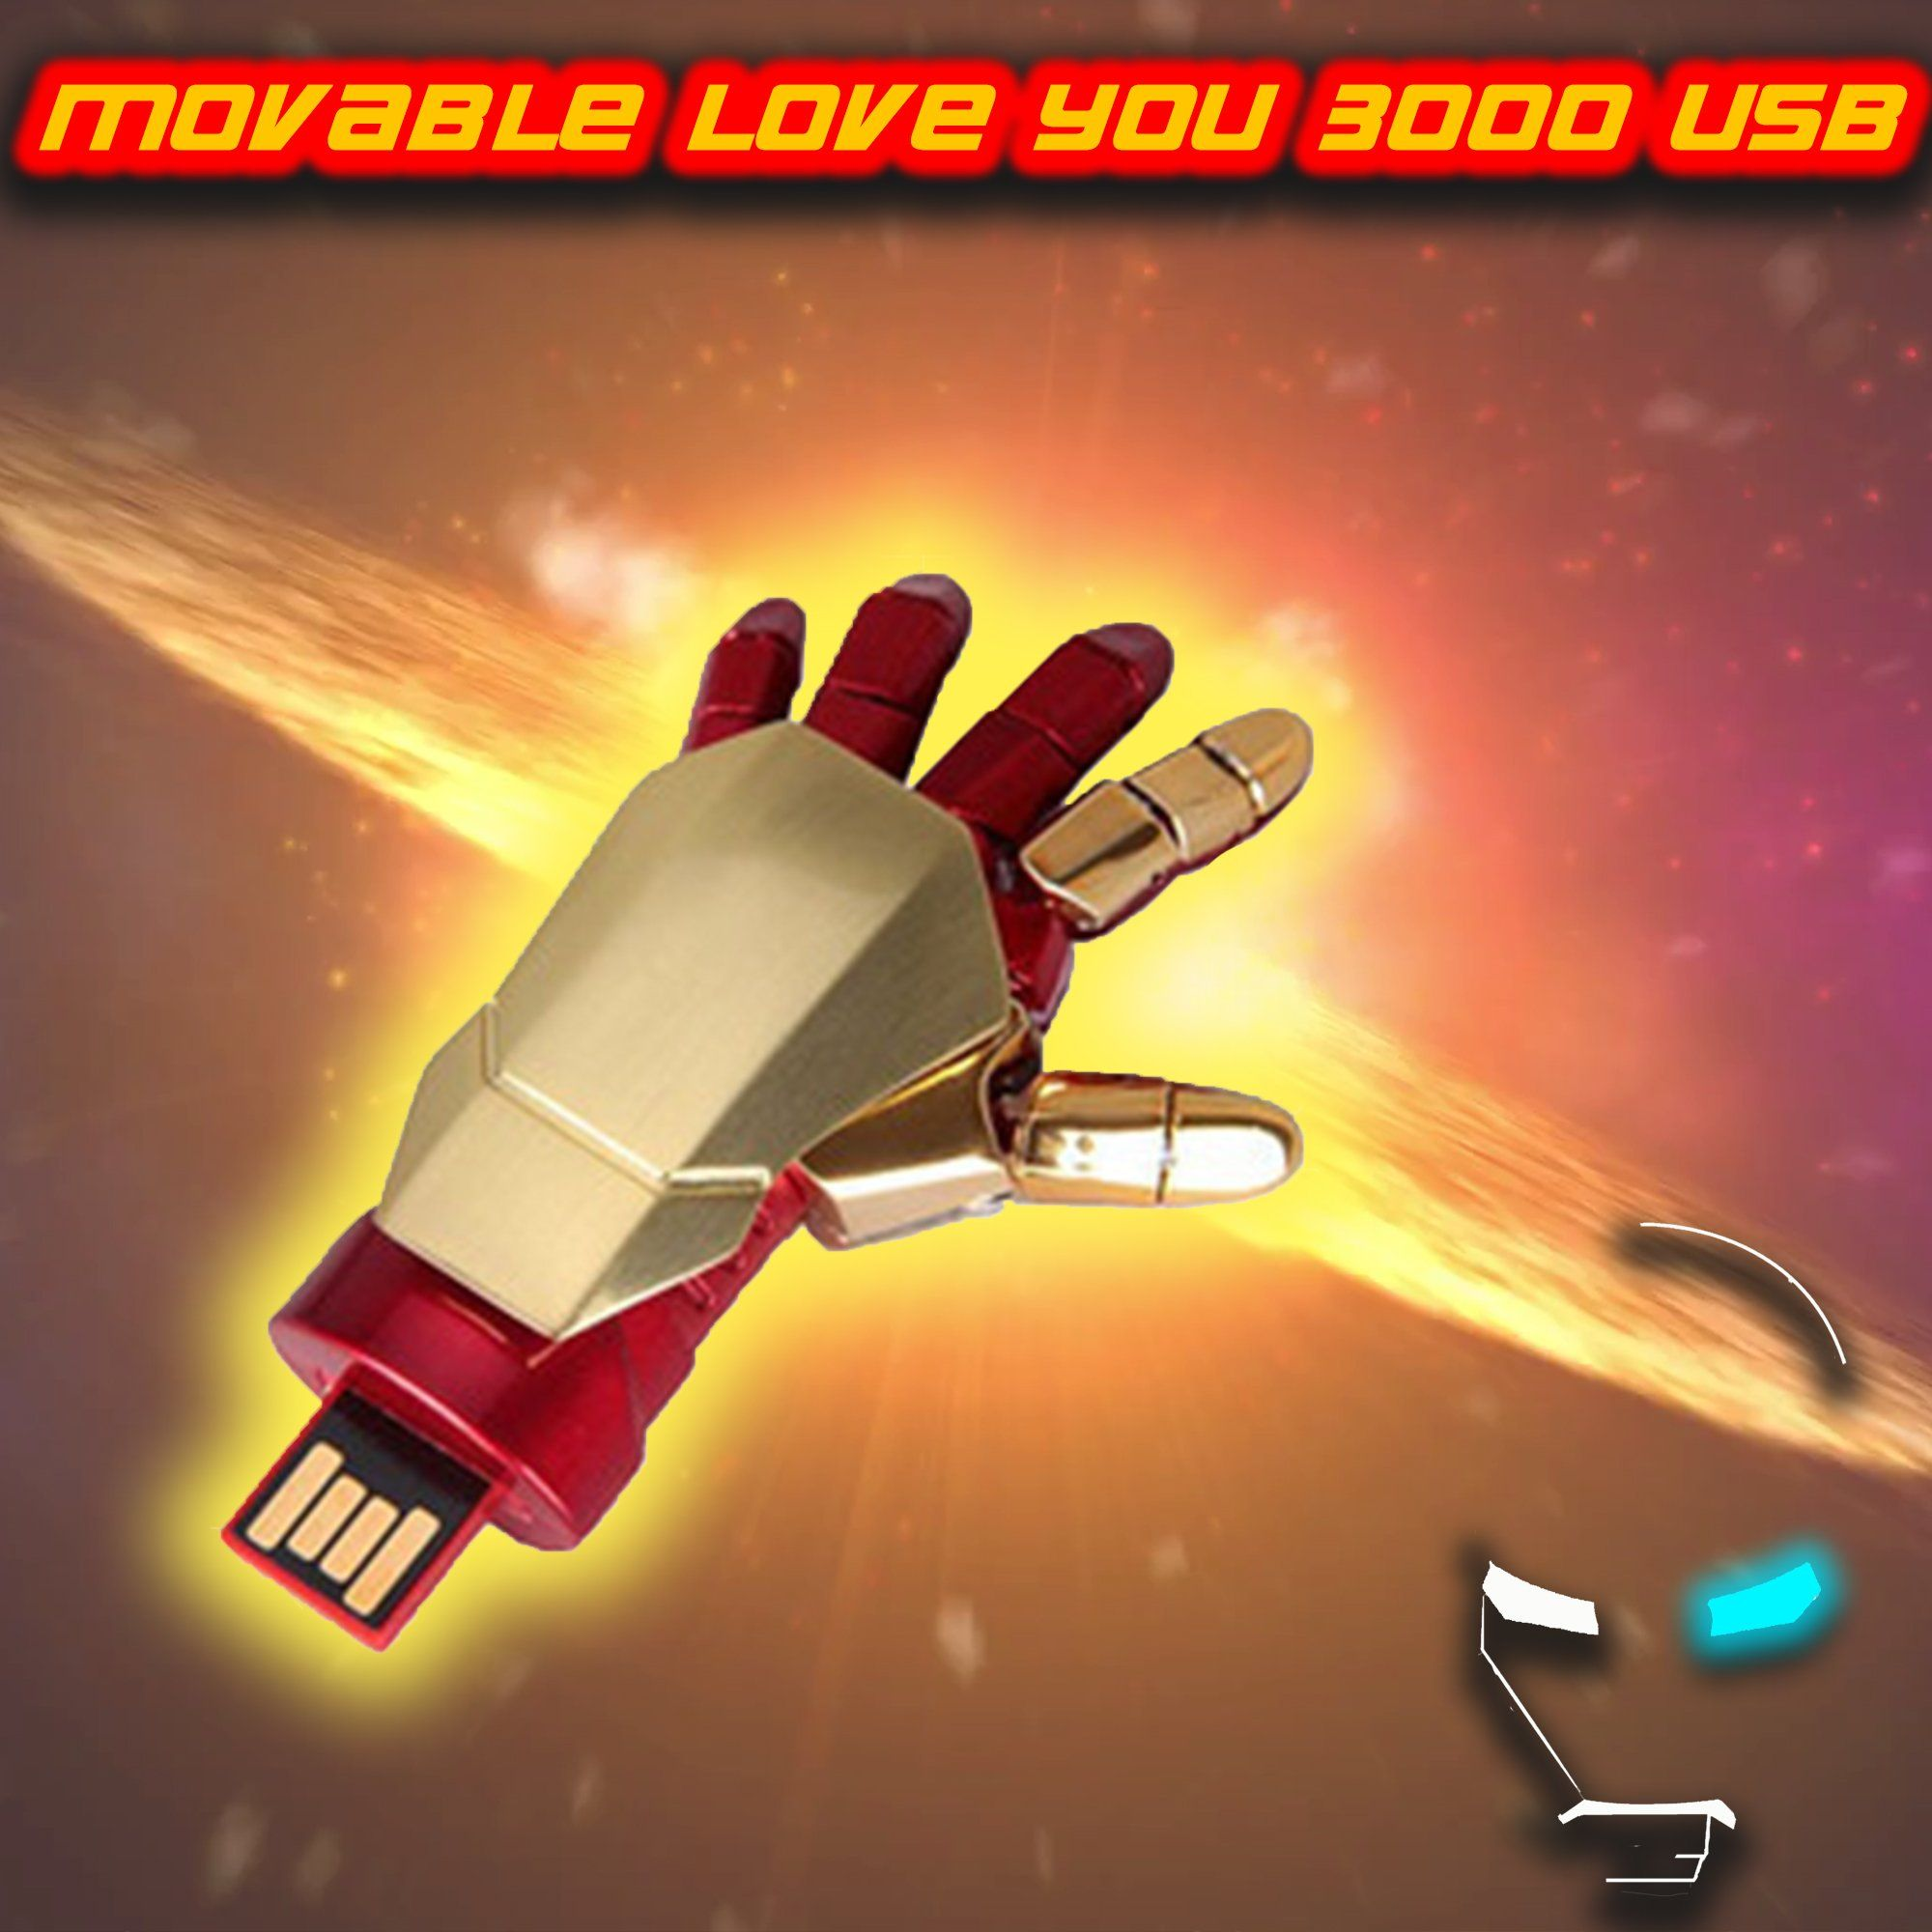 Movable Love You 3000 USB